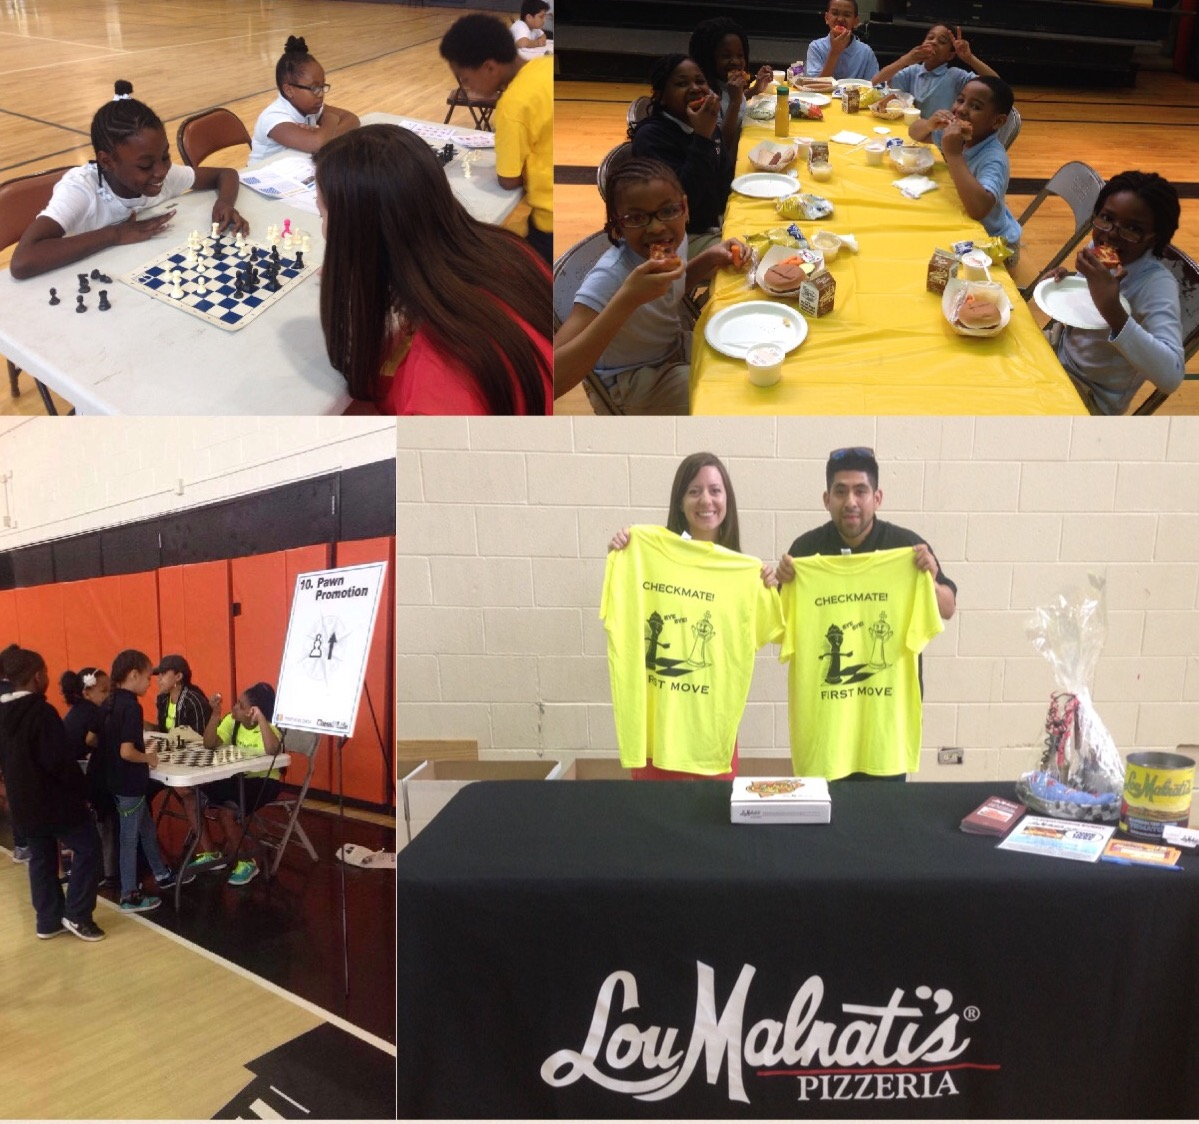 Lou Malnati's at the First Move Chess Program